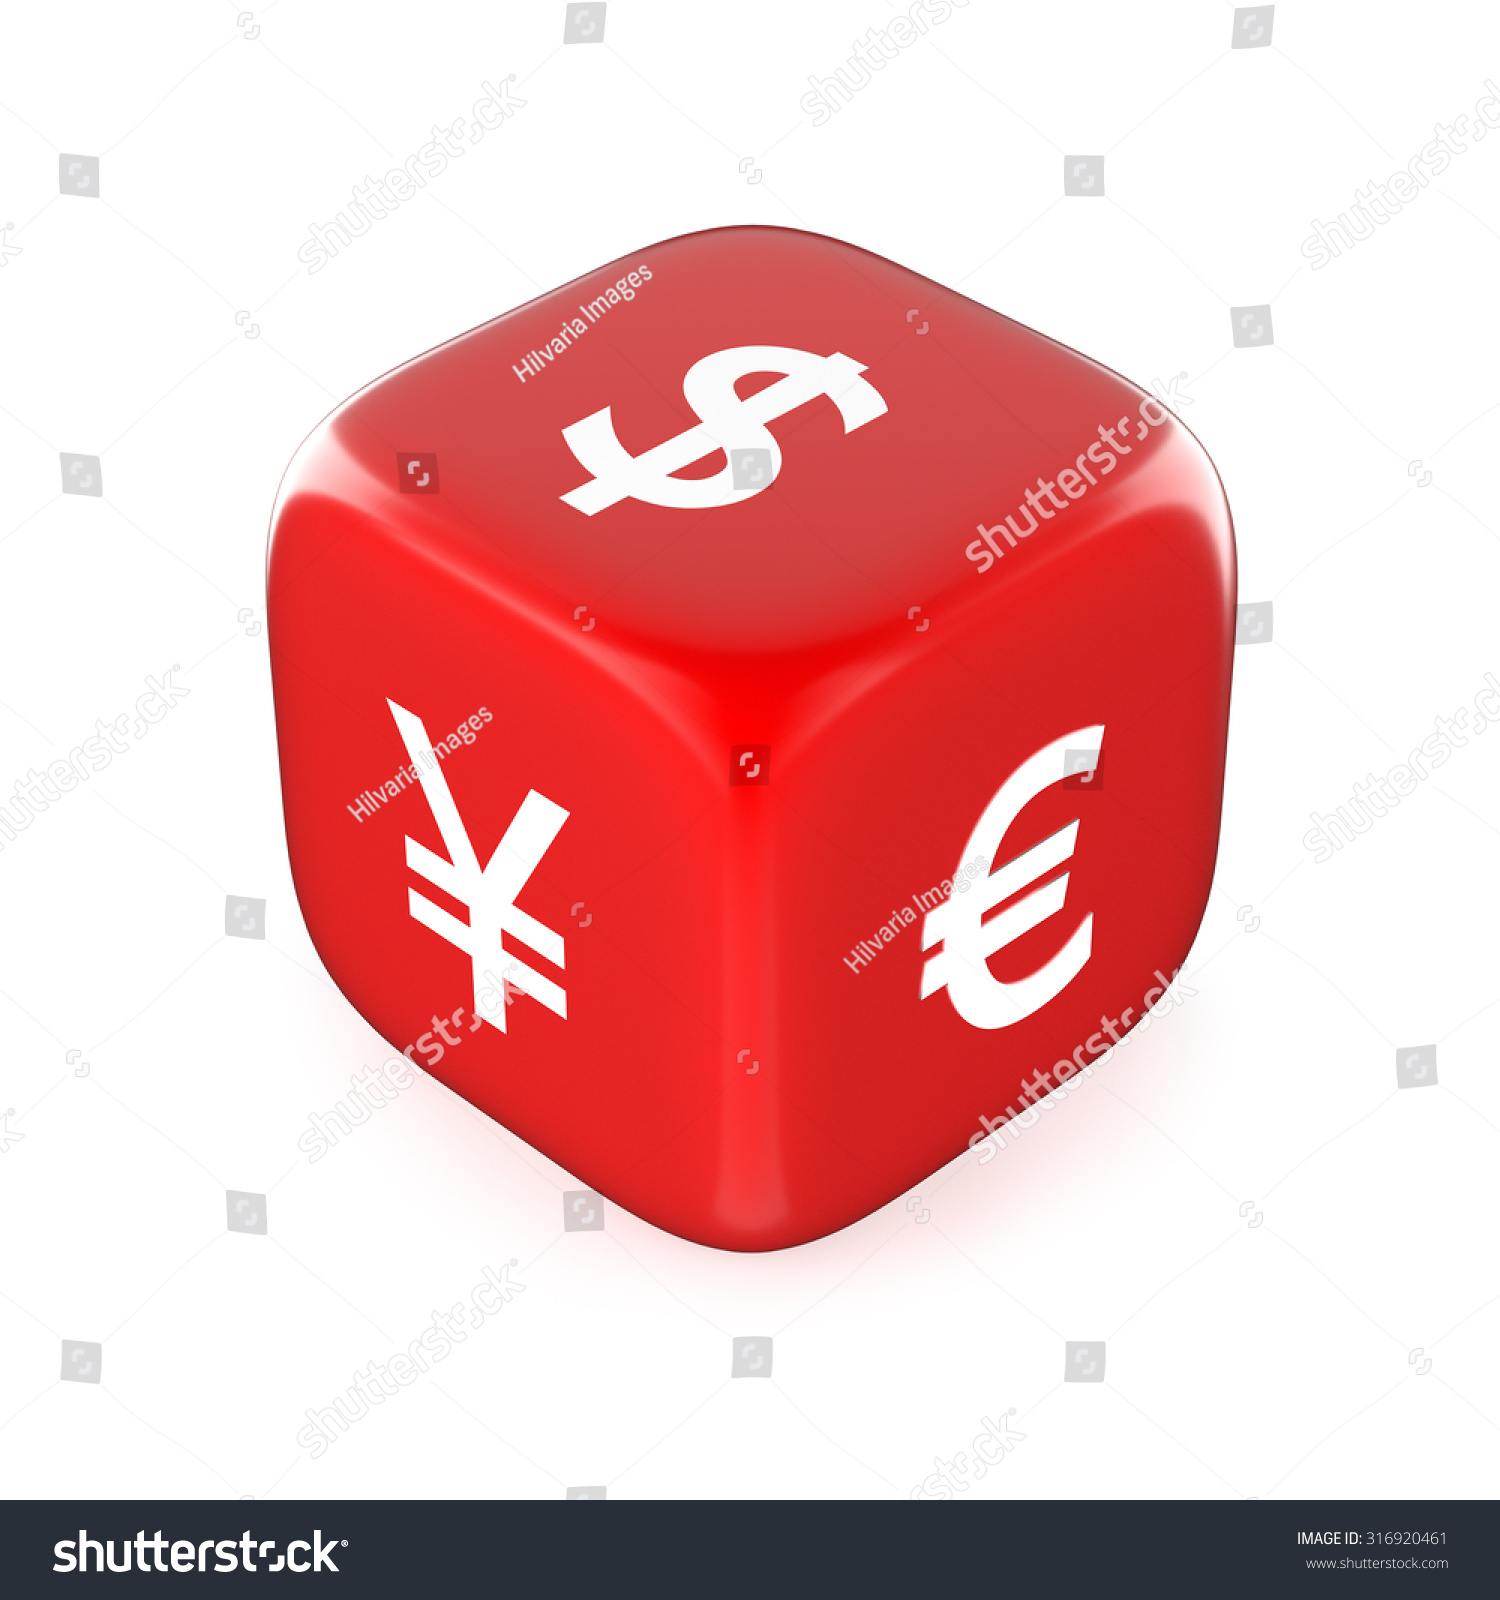 Currency symbols on red dice exchange stock illustration 316920461 currency symbols on red dice exchange rate concept biocorpaavc